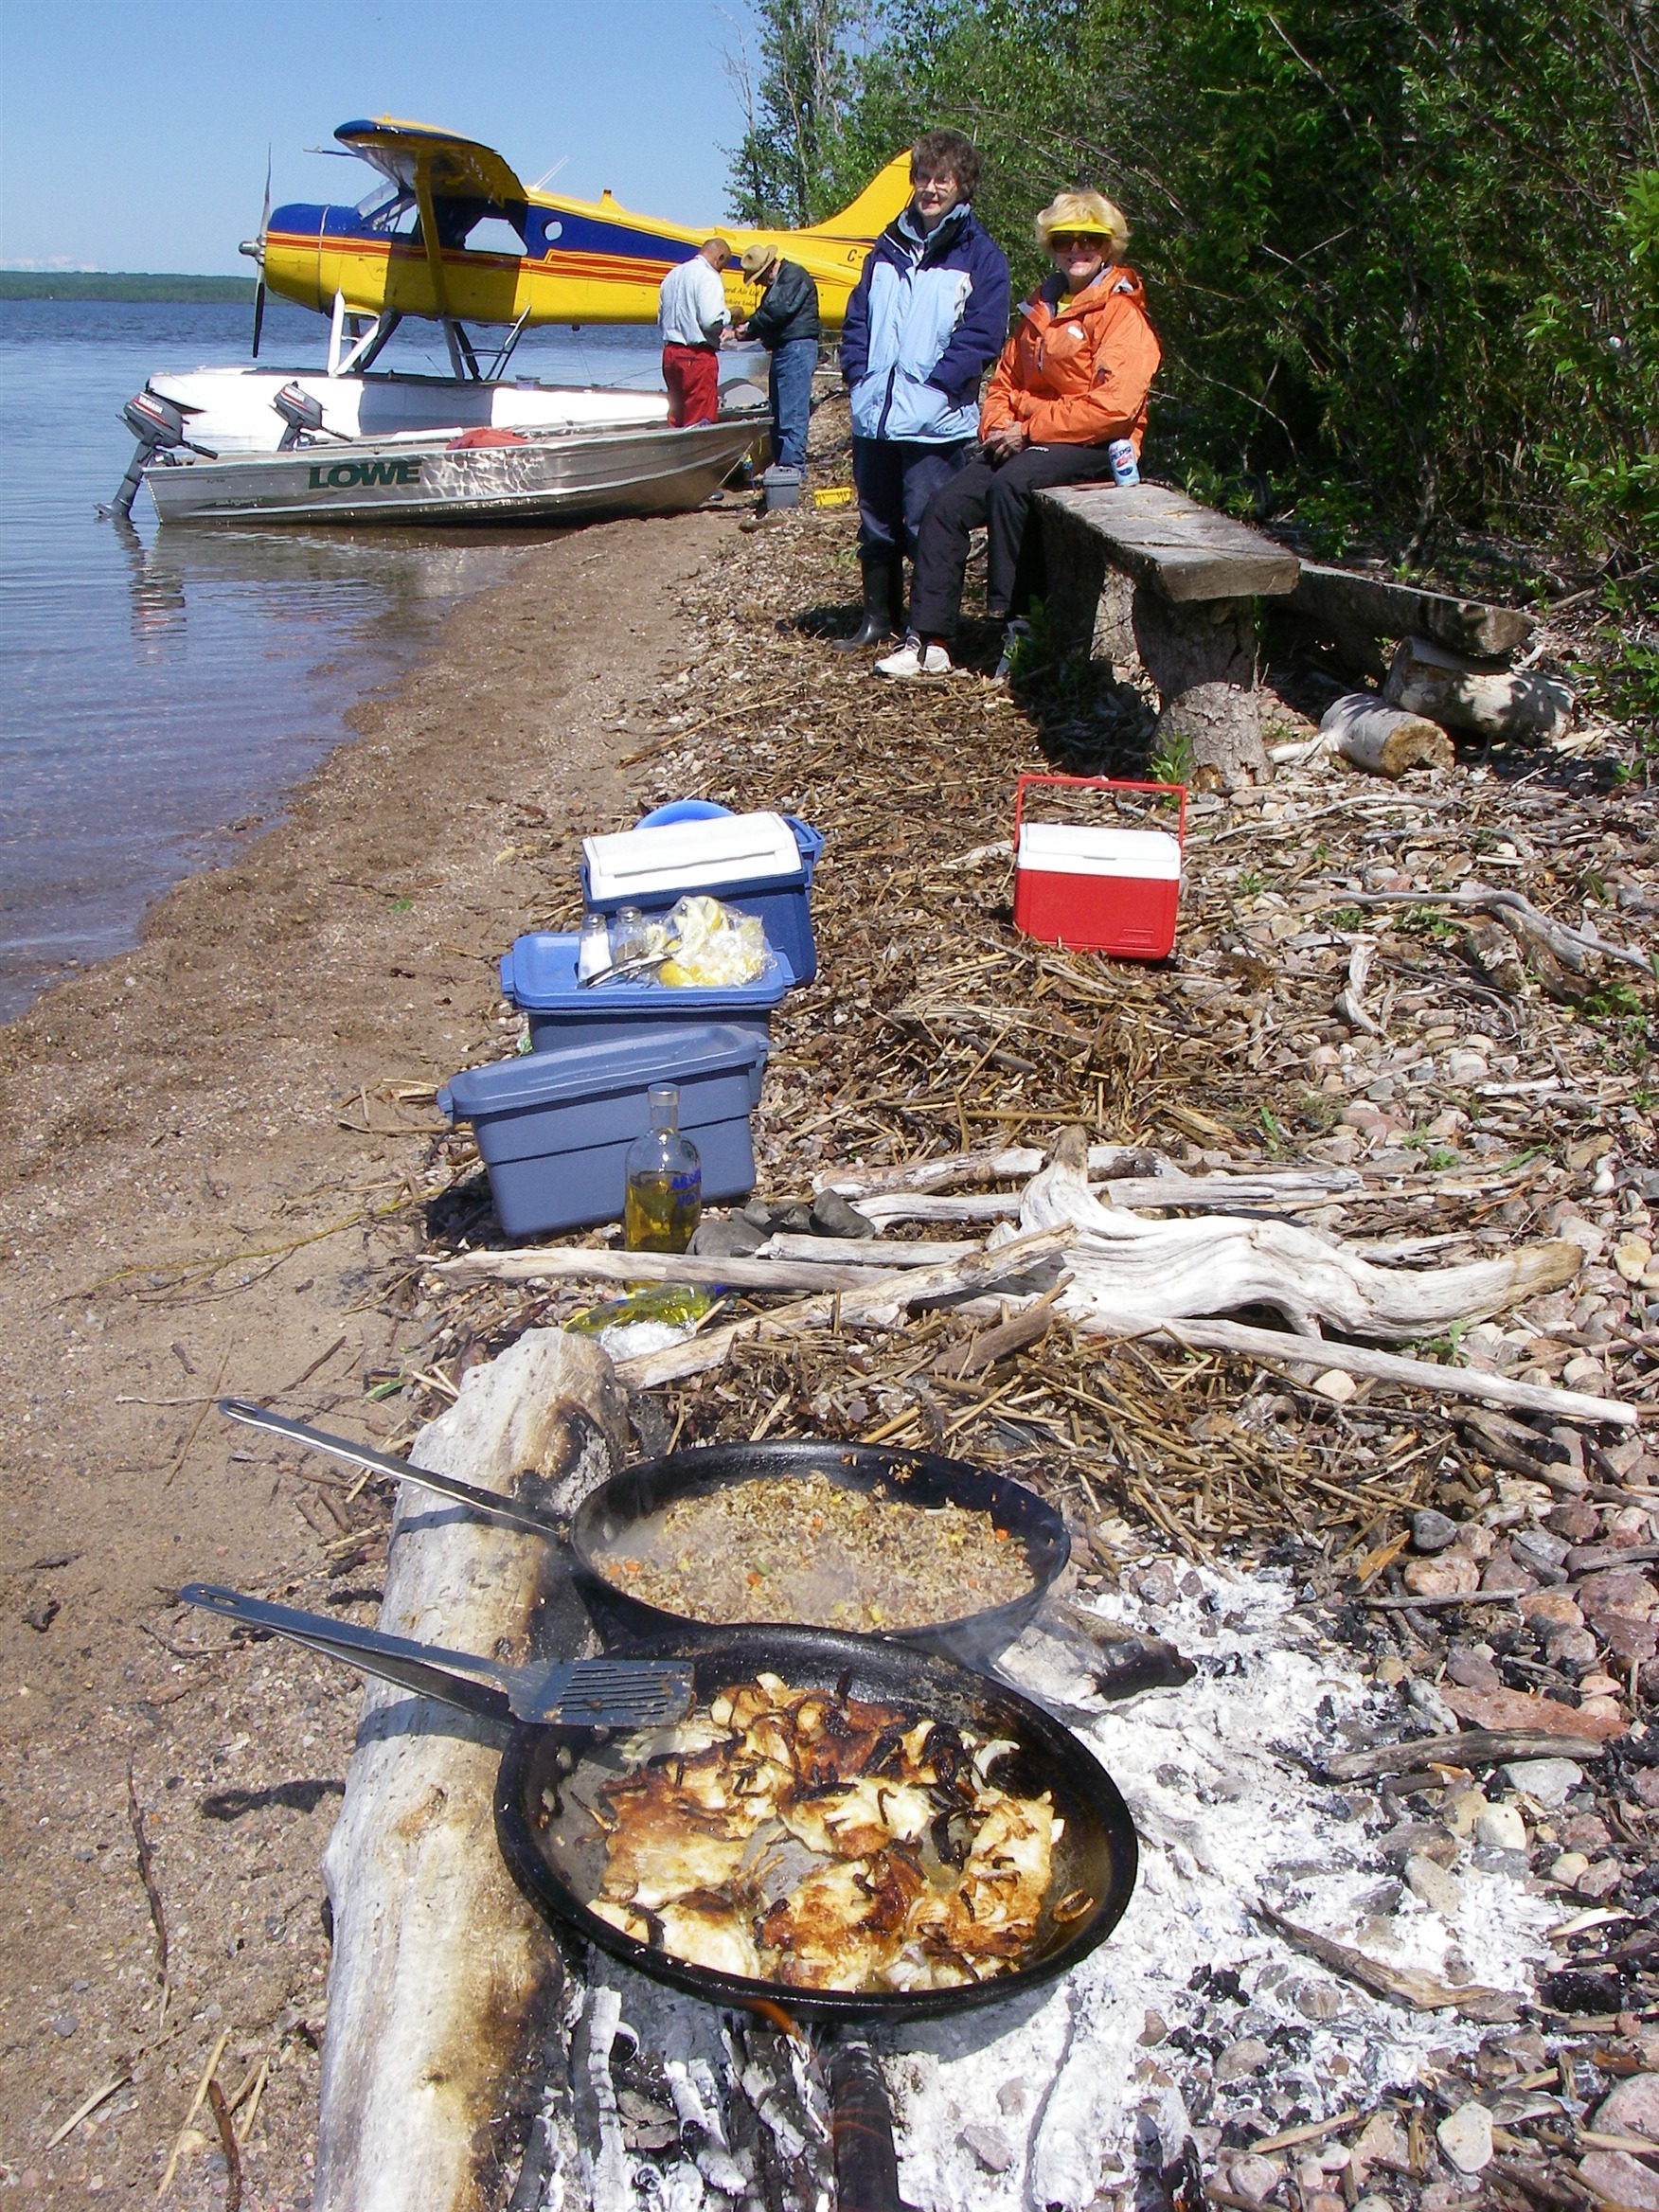 A delicious shore lunch being prepared